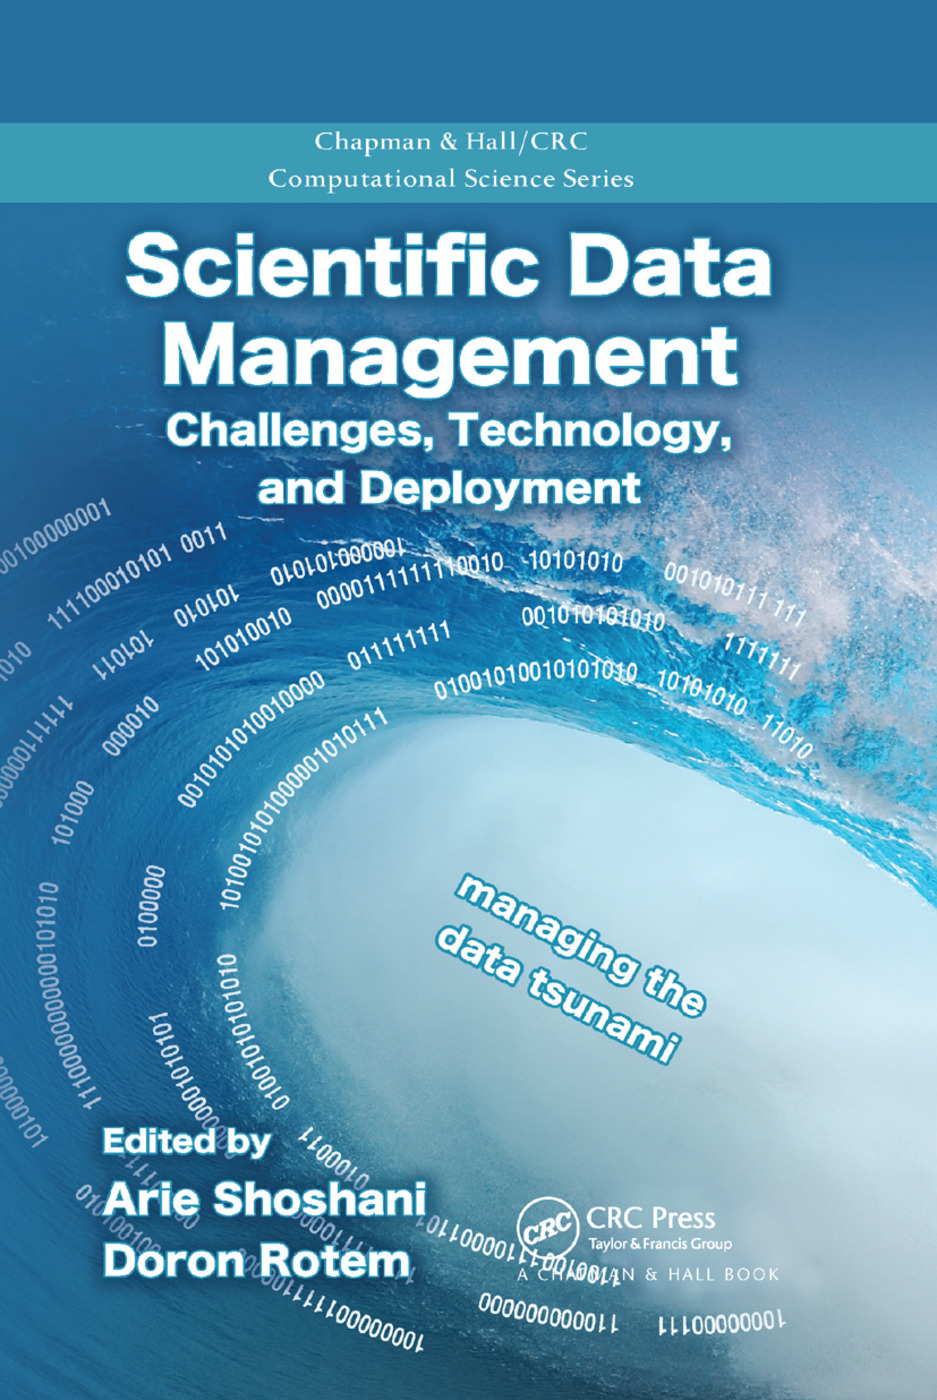 Scientific Data Management: Challenges, Technology, and